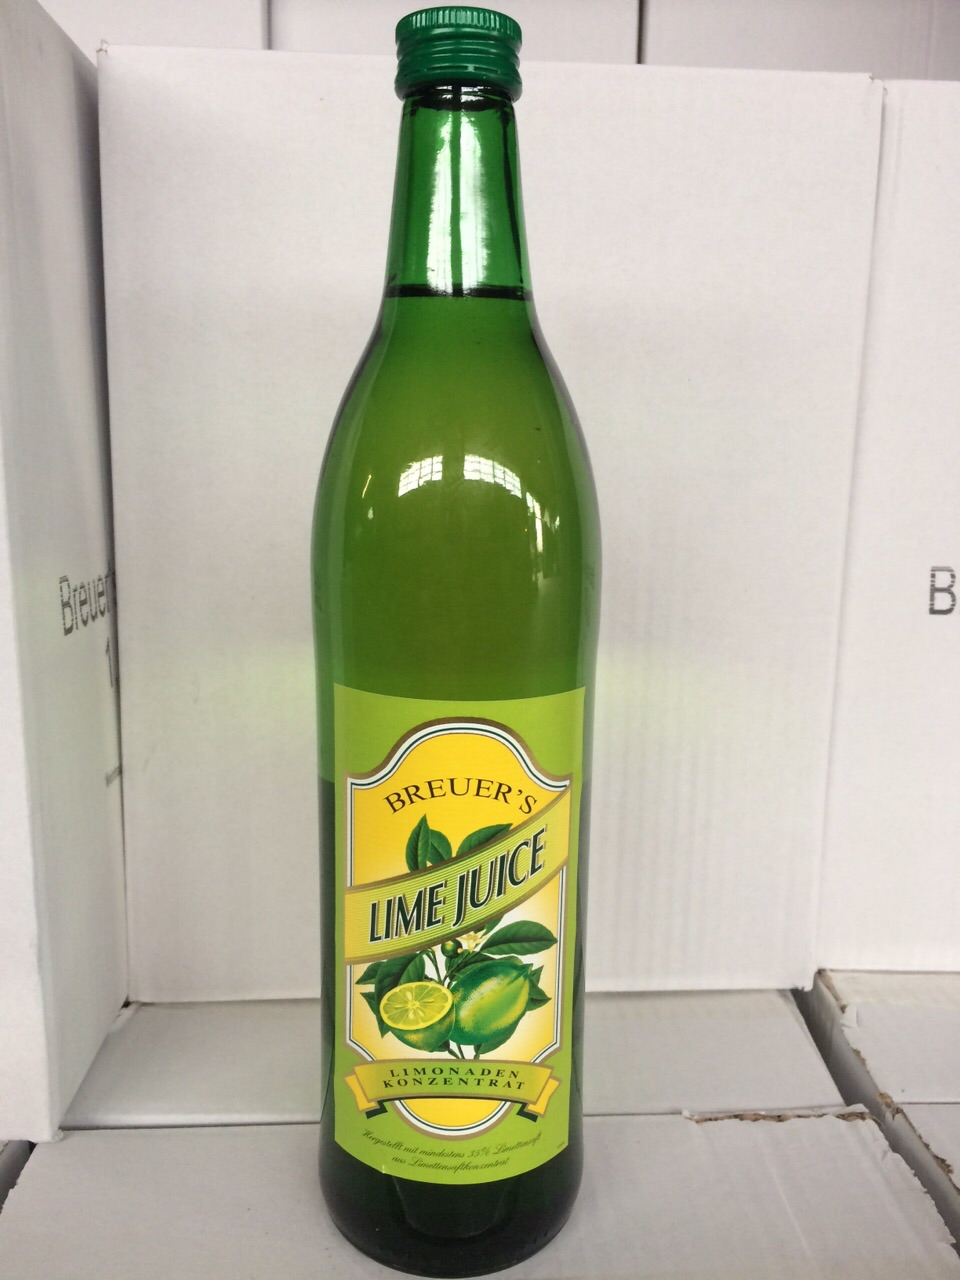 Breuers Lime Juice